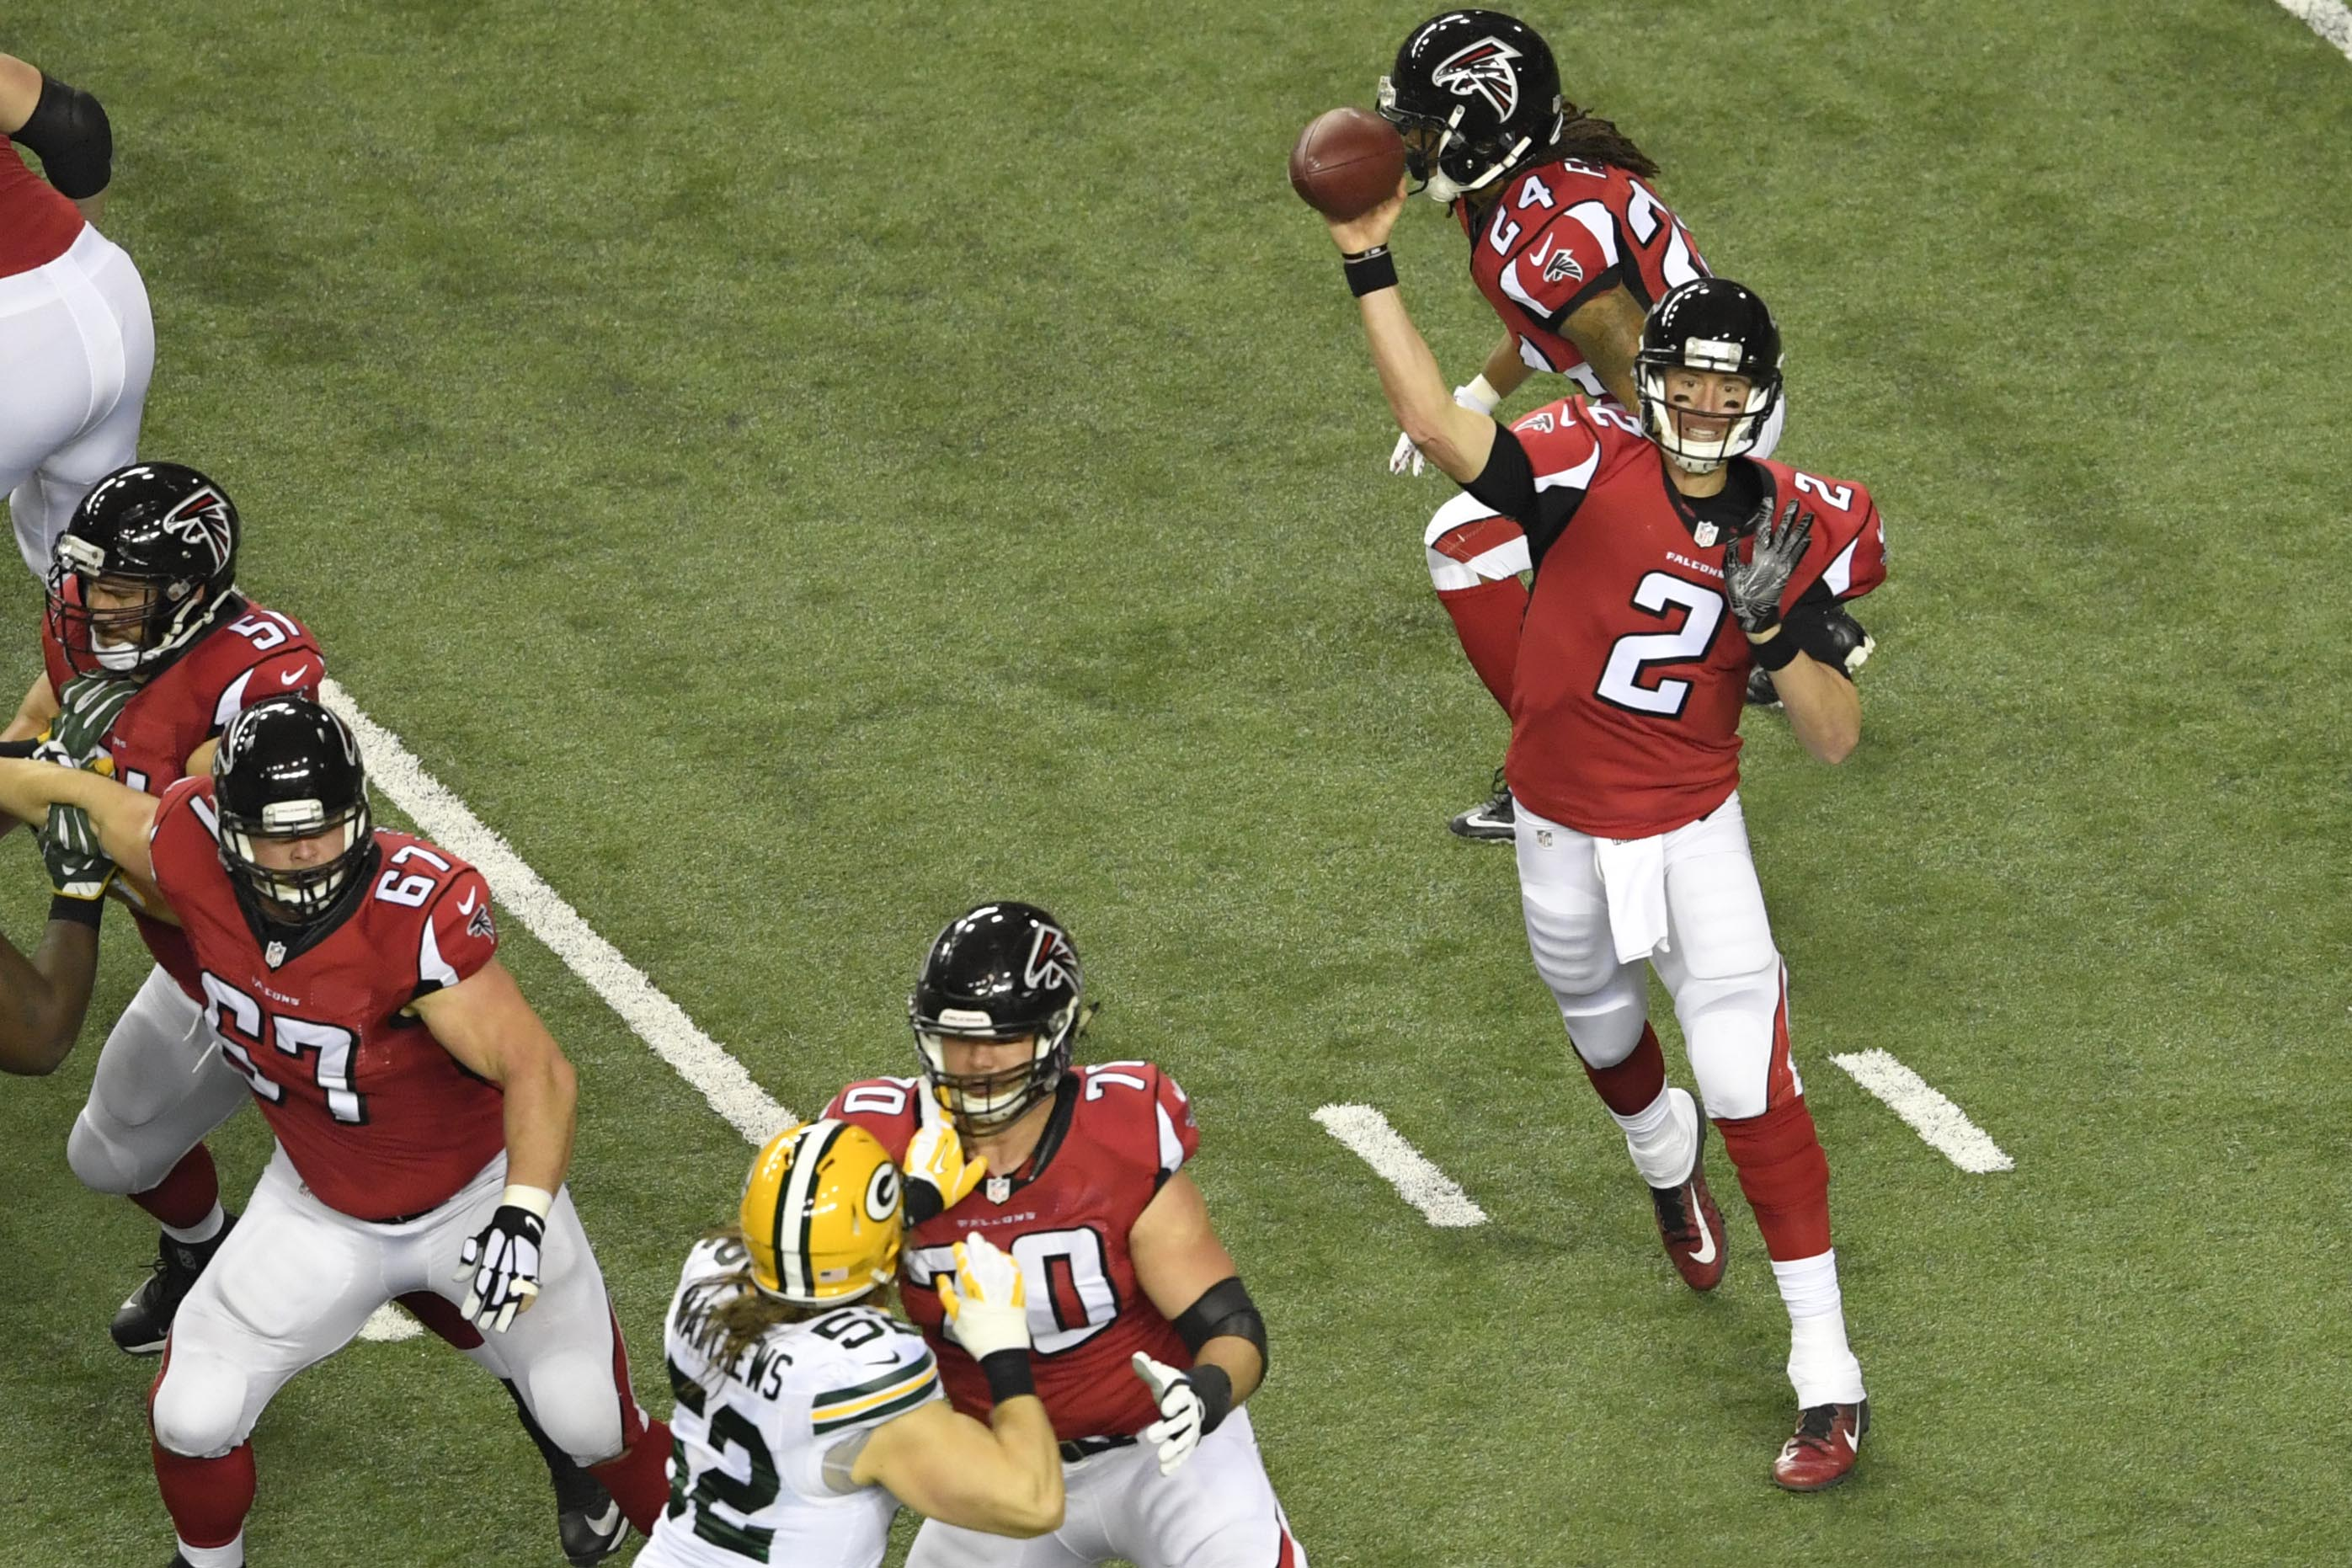 9831850-nfl-nfc-championship-green-bay-packers-at-atlanta-falcons